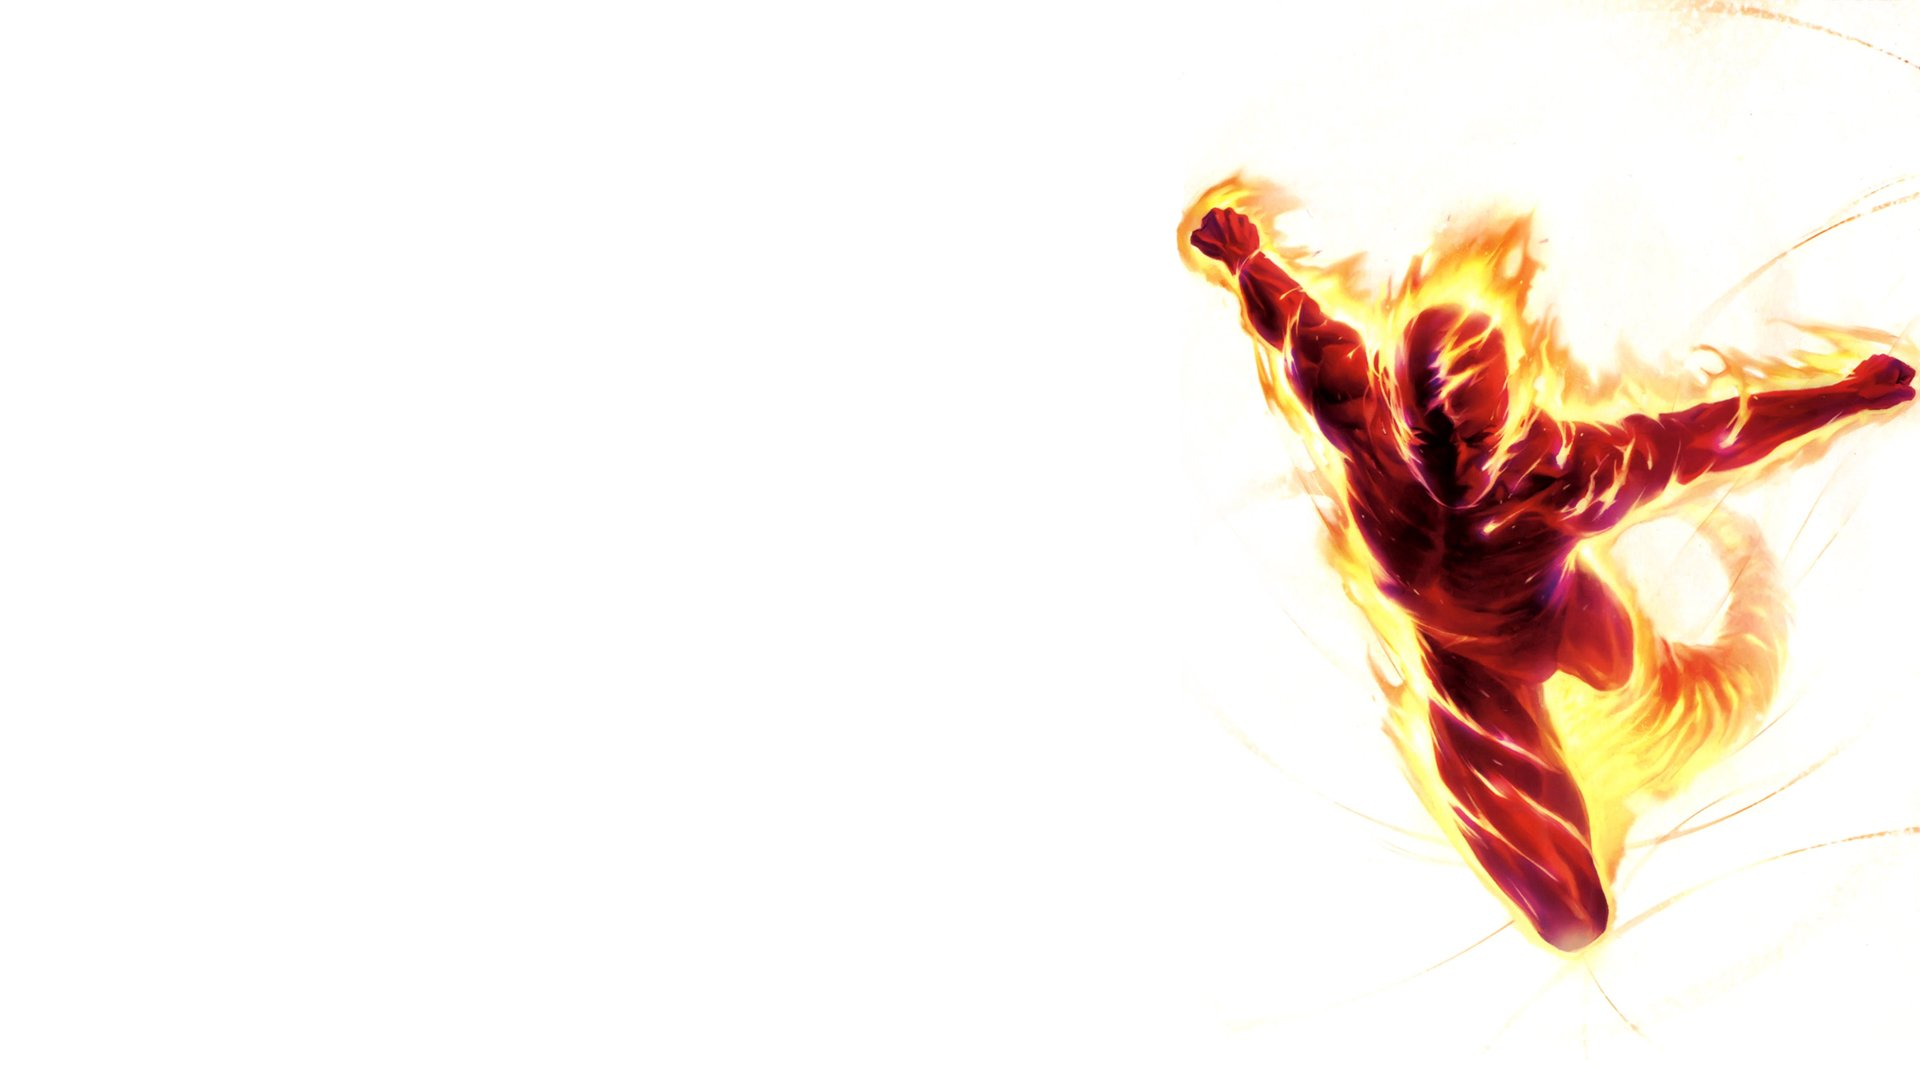 9 Human Torch HD Wallpapers Background Images 1920x1080